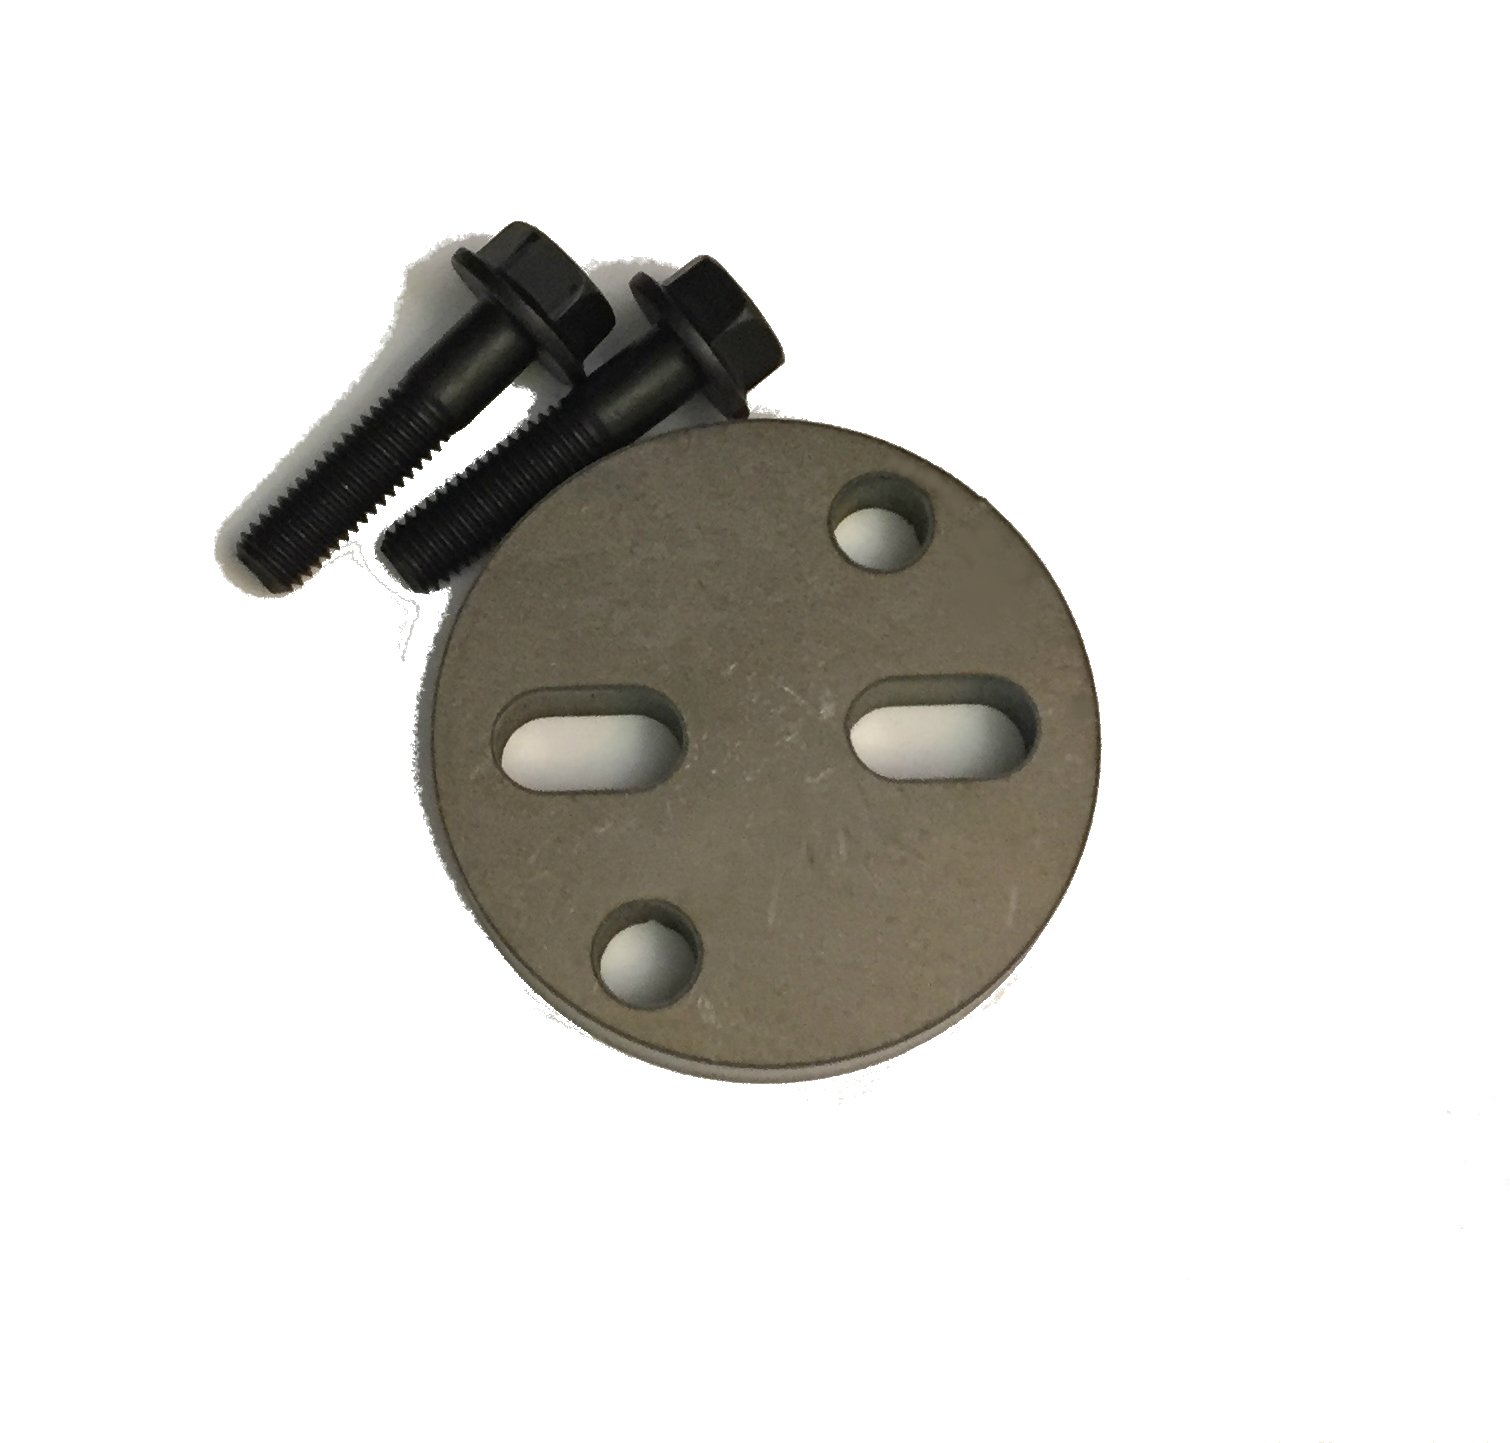 Cheap Vp44 Injection Pump, find Vp44 Injection Pump deals on